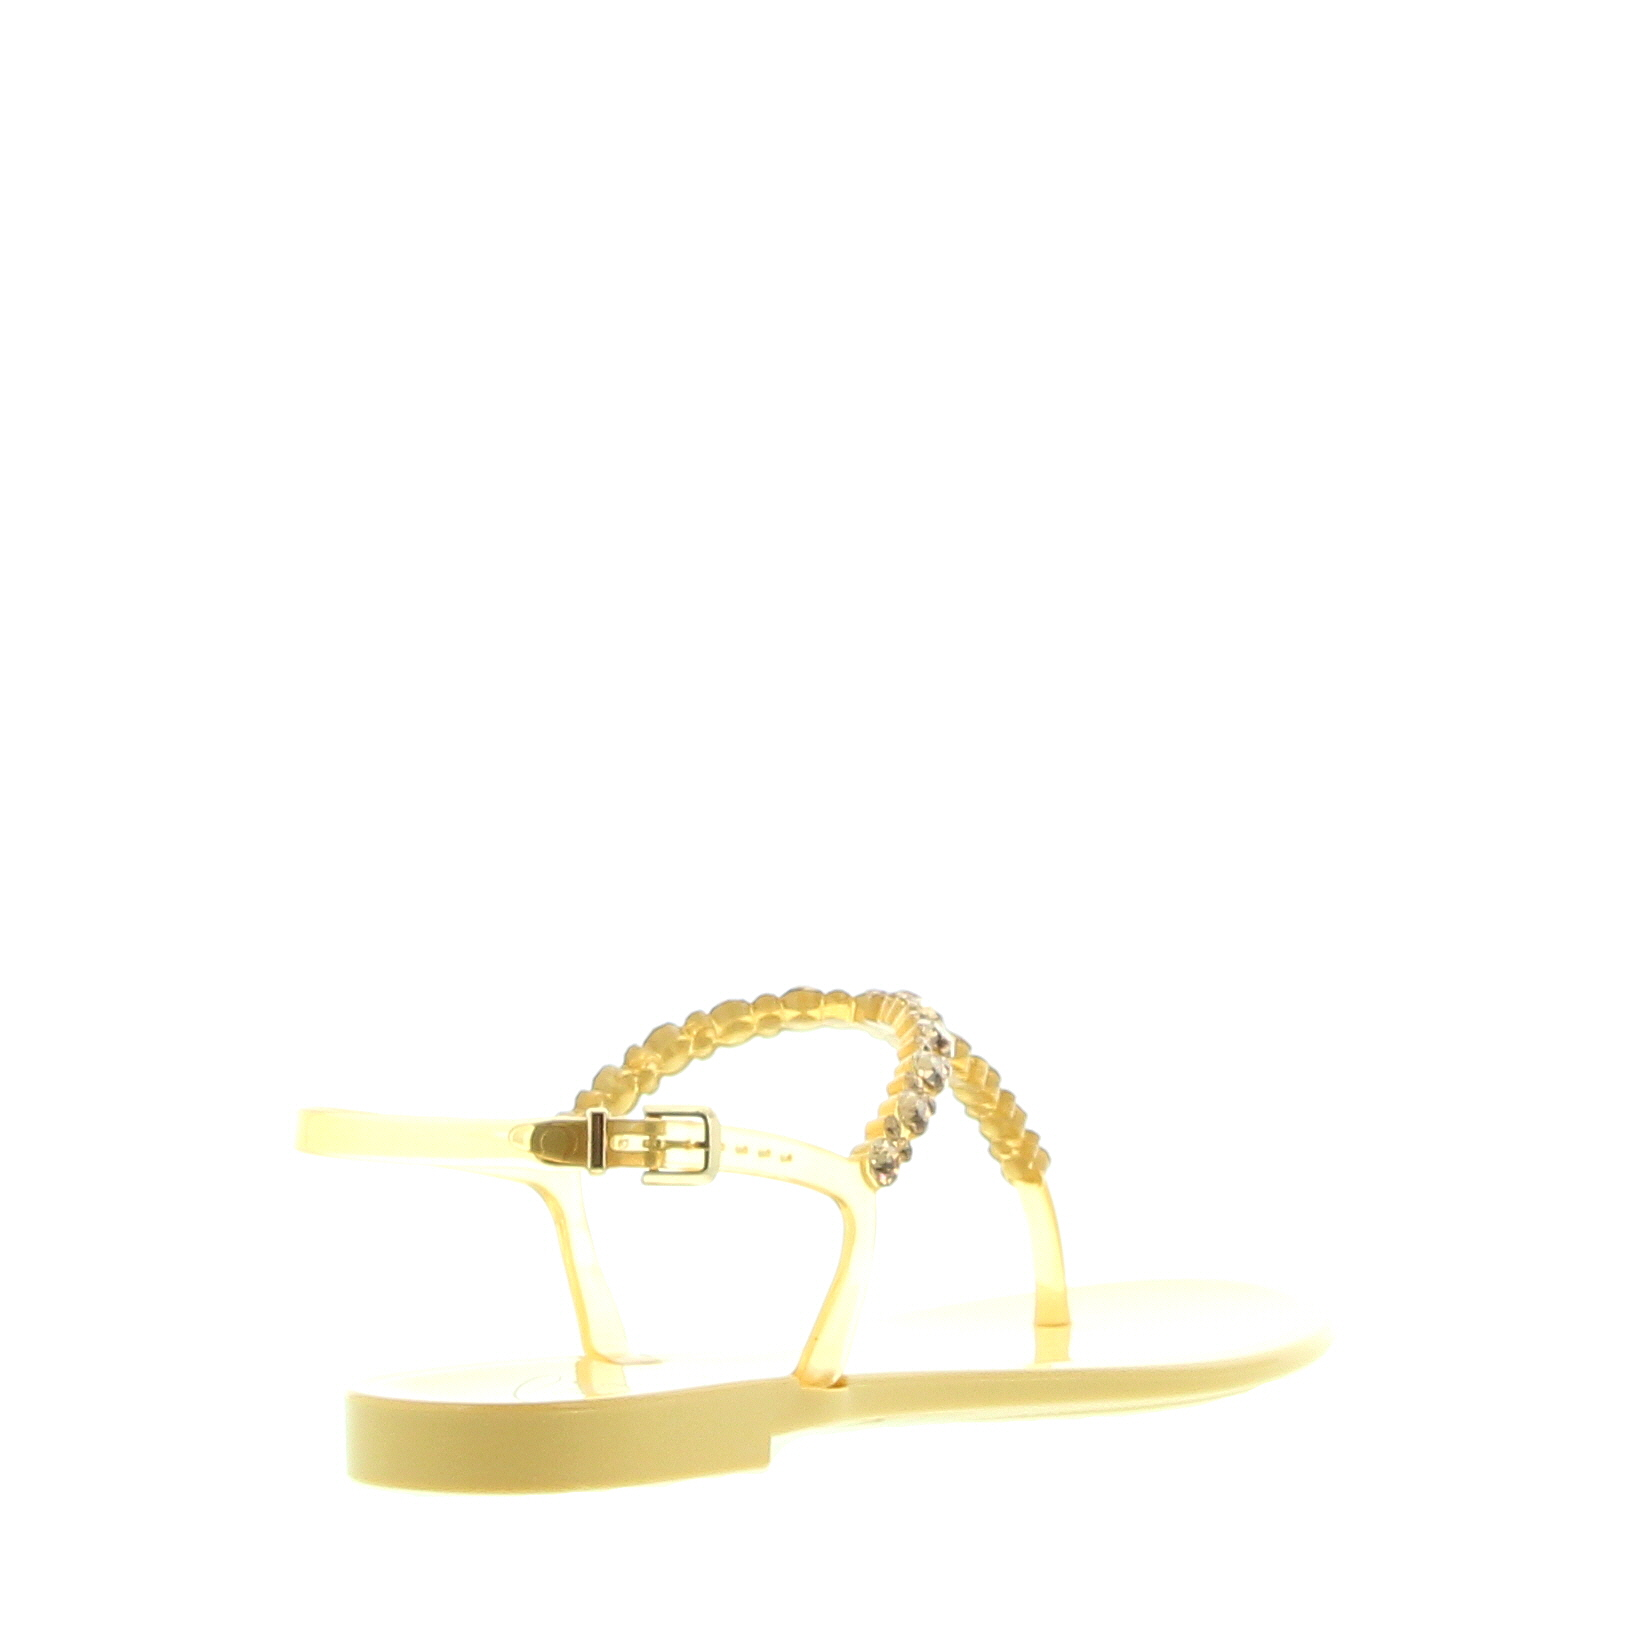 Smoke Claire Jelly Sandal   zulily   Jelly sandals